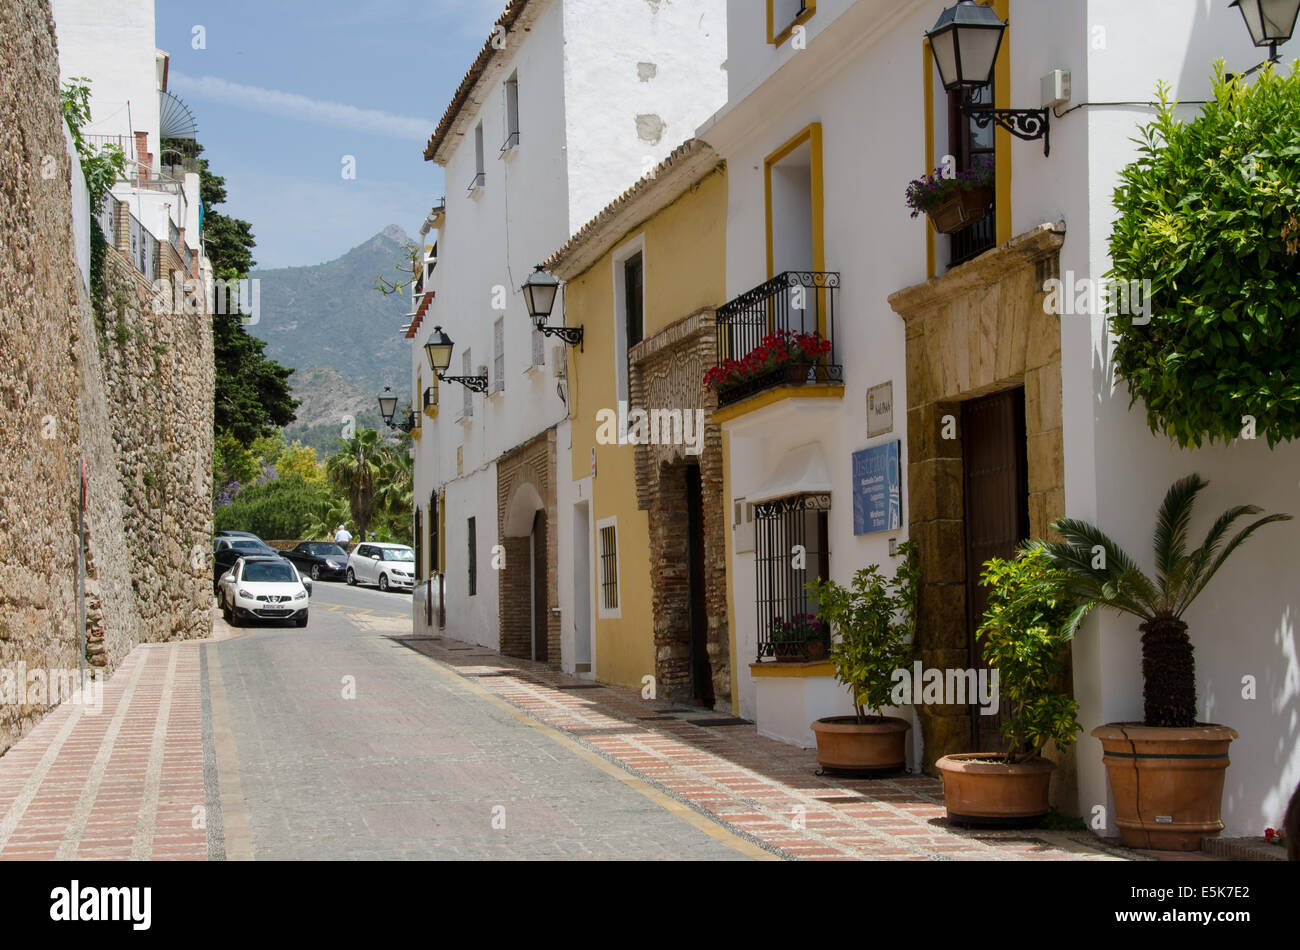 Salinas street of the Old Town (Casco Antiguo) in Marbella Spain. - Stock Image